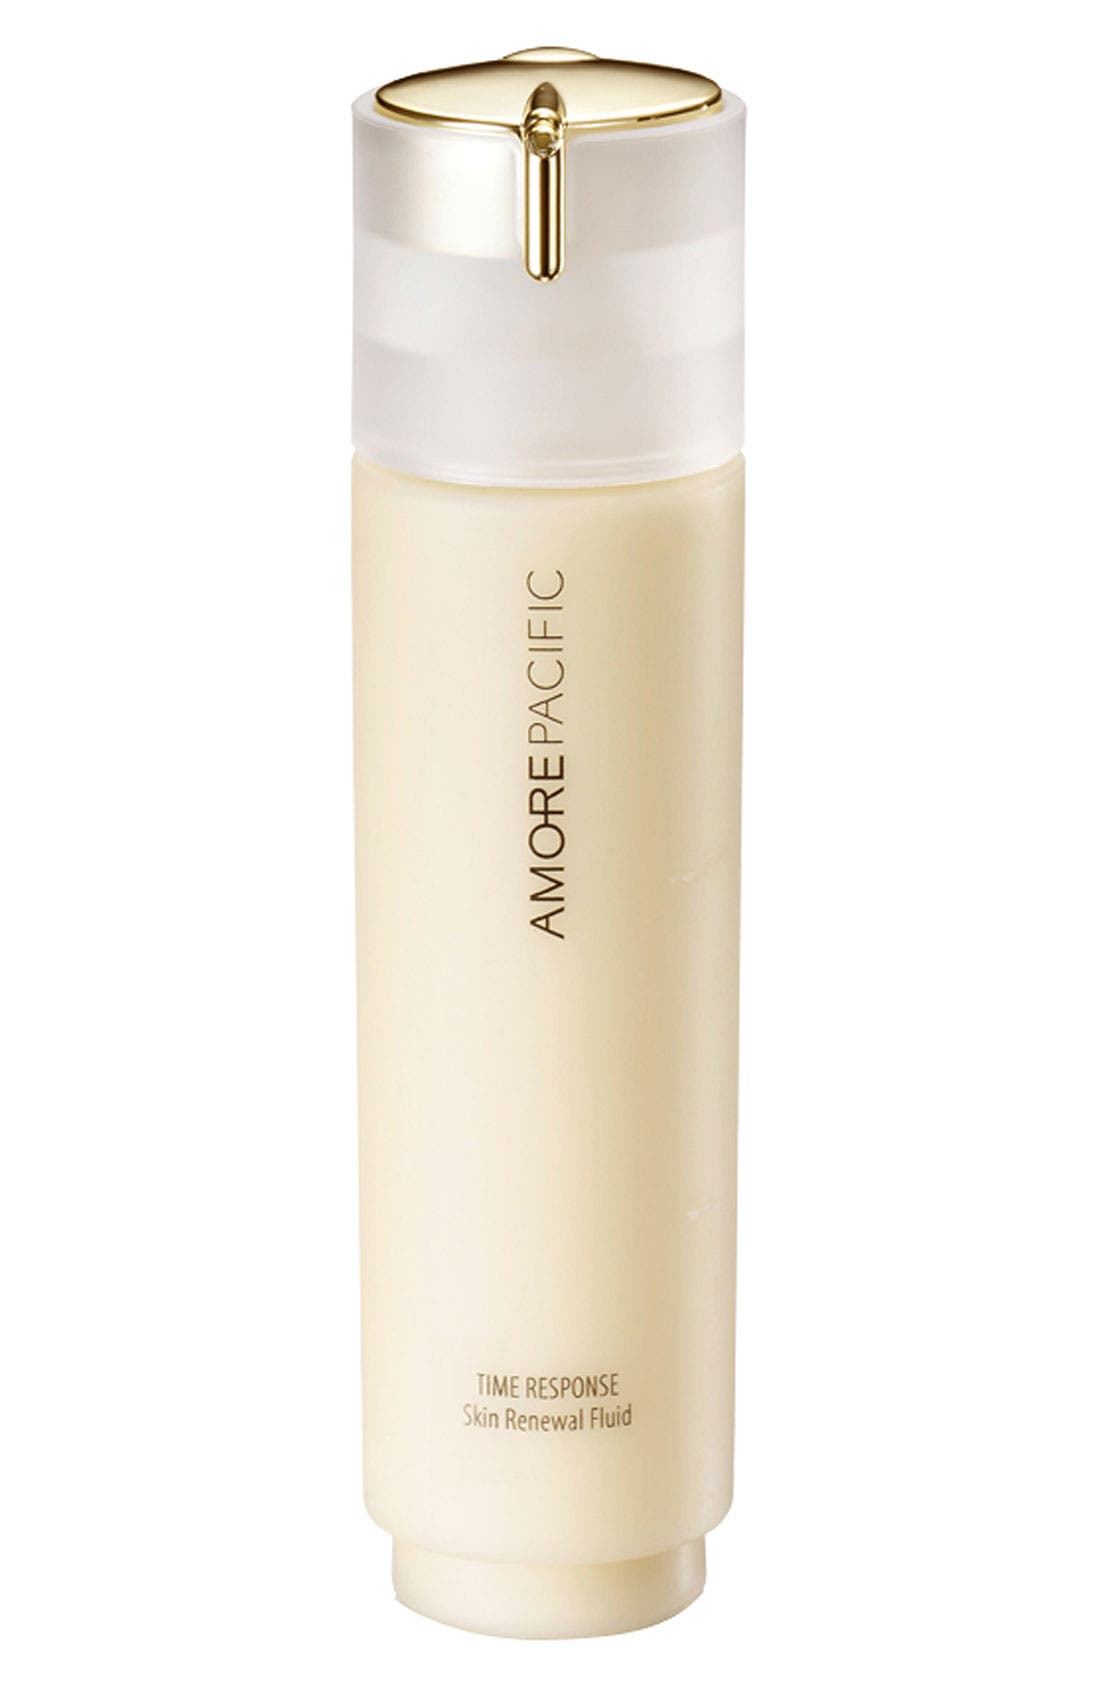 AMOREPACIFIC Time Response Skin Renewal Fluid